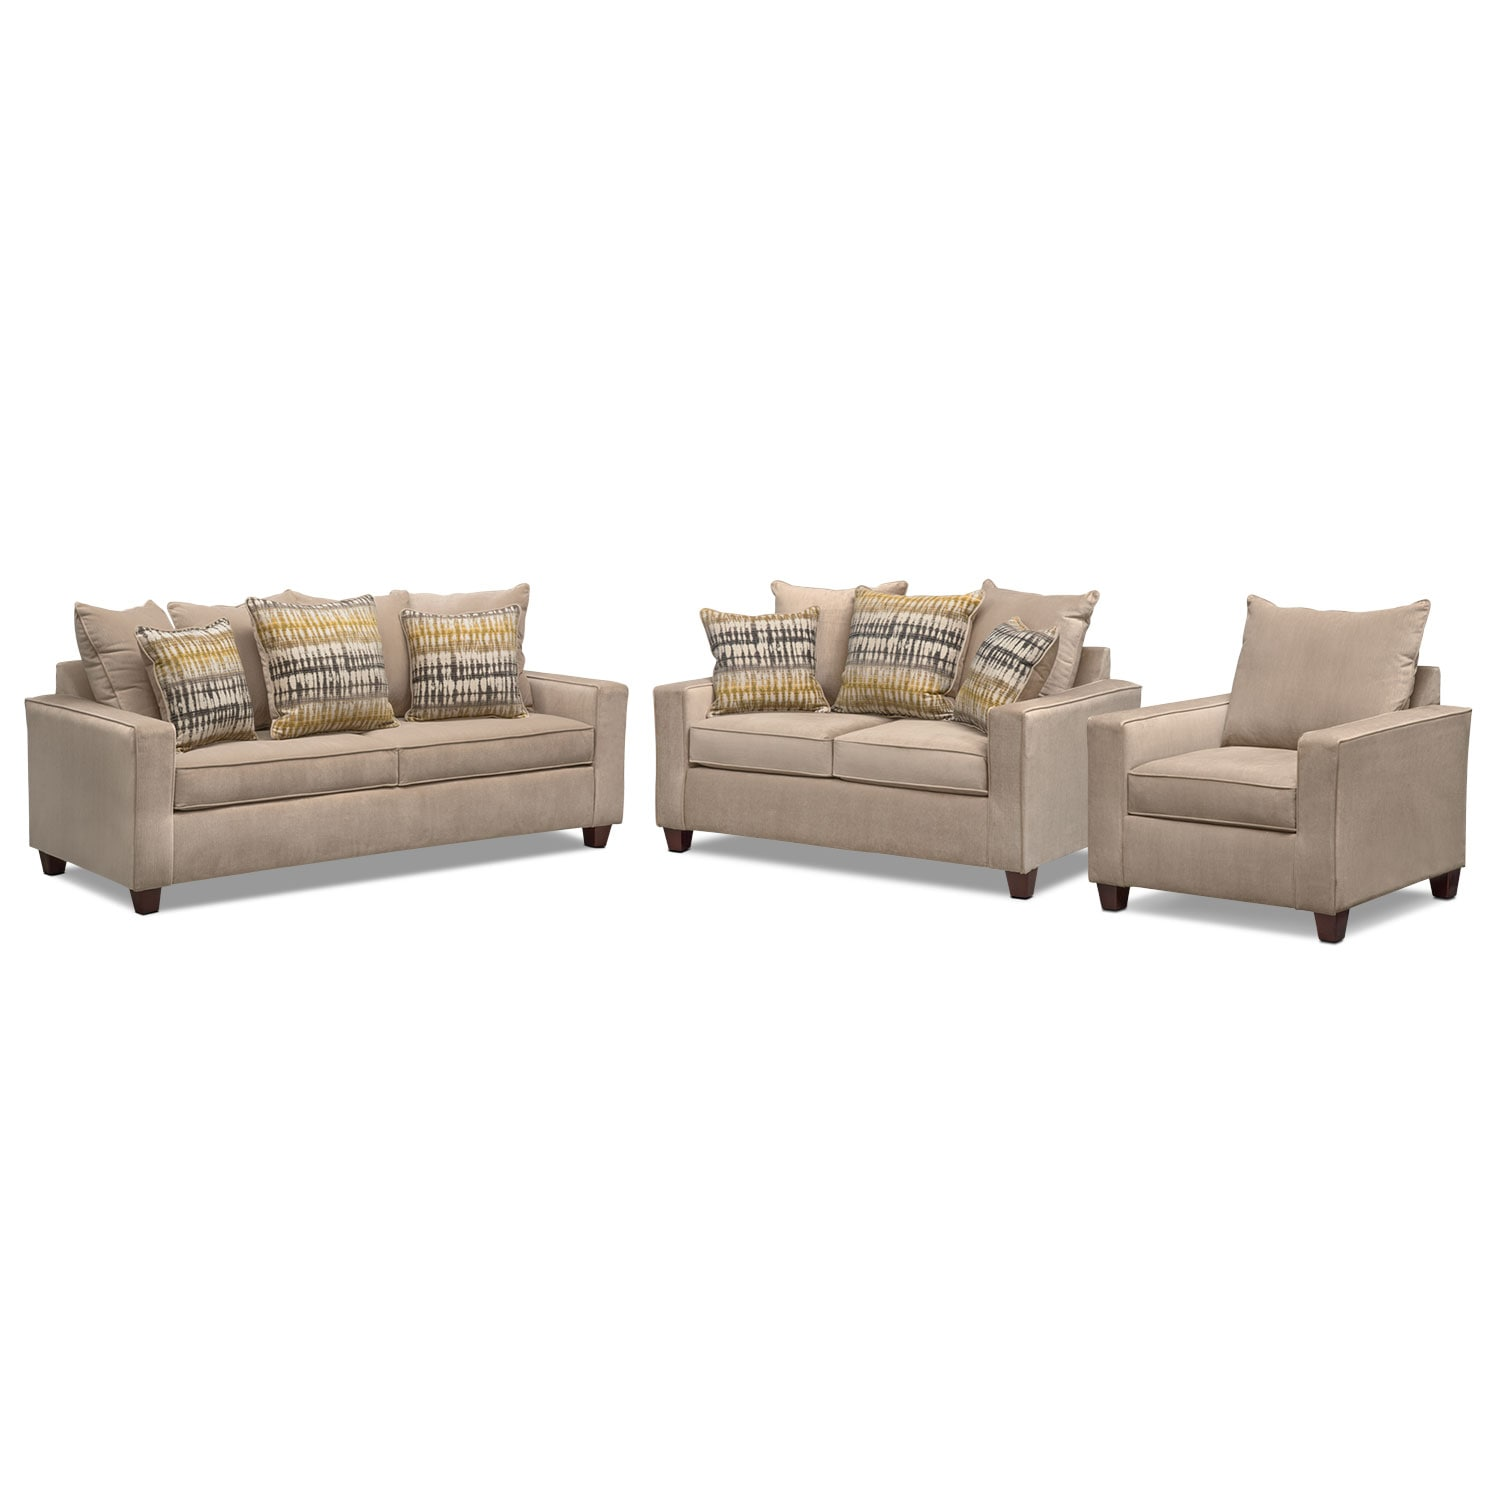 Bryden Queen Memory Foam Sleeper Sofa, Loveseat and Chair Set - Beige